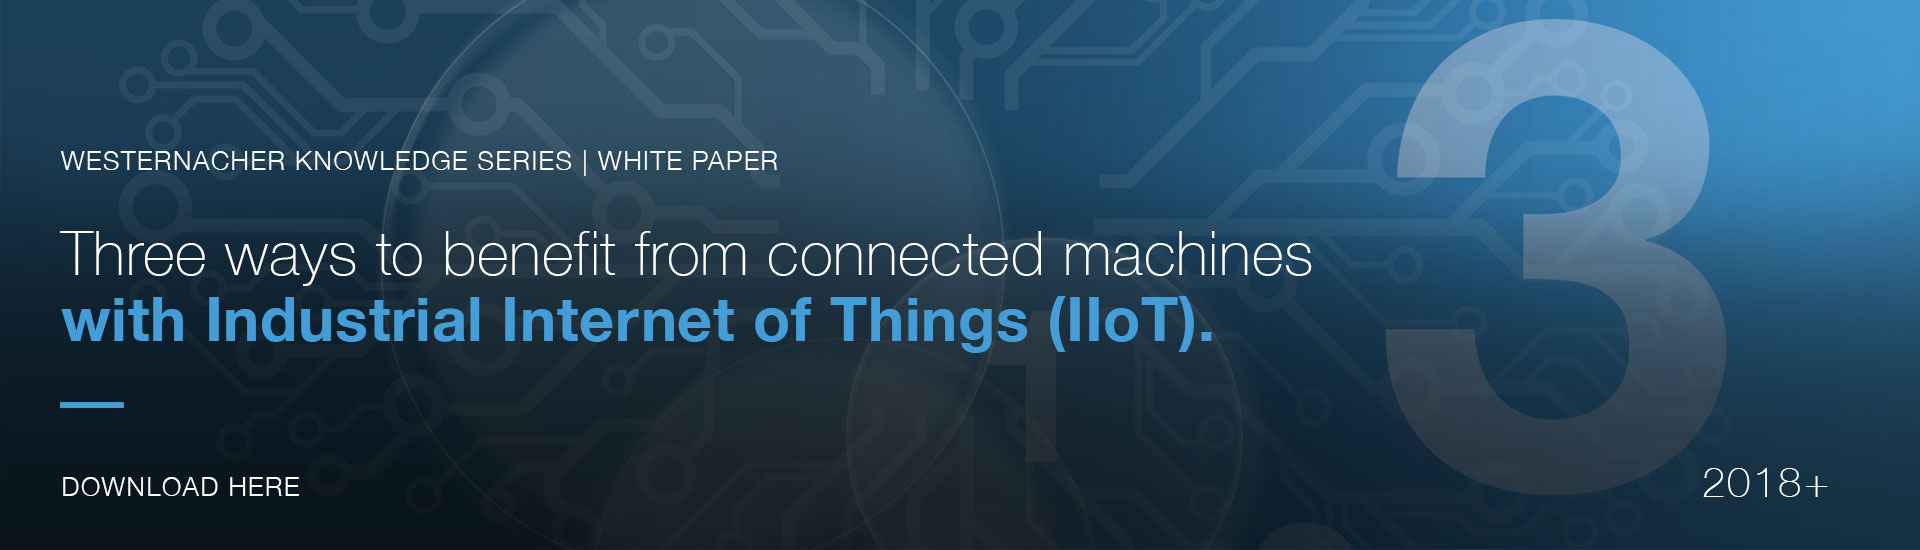 Industrial Internet of Things (IIoT): 3 ways to benefit from connected machines.